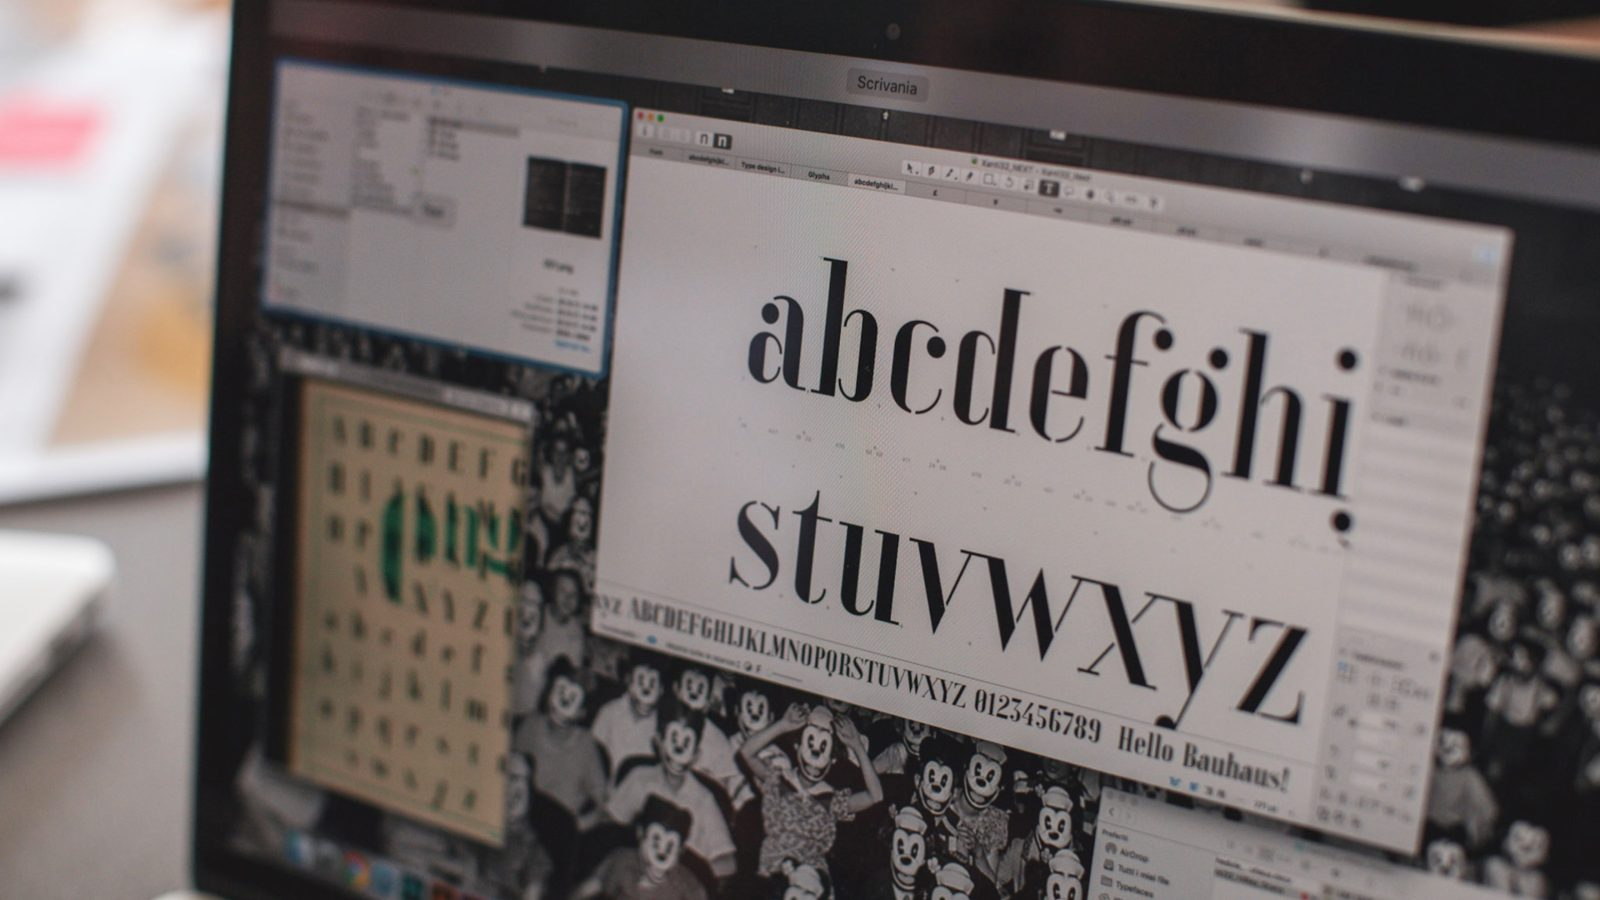 Adobe makes lost Bauhaus fonts available for use in Creative Cloud